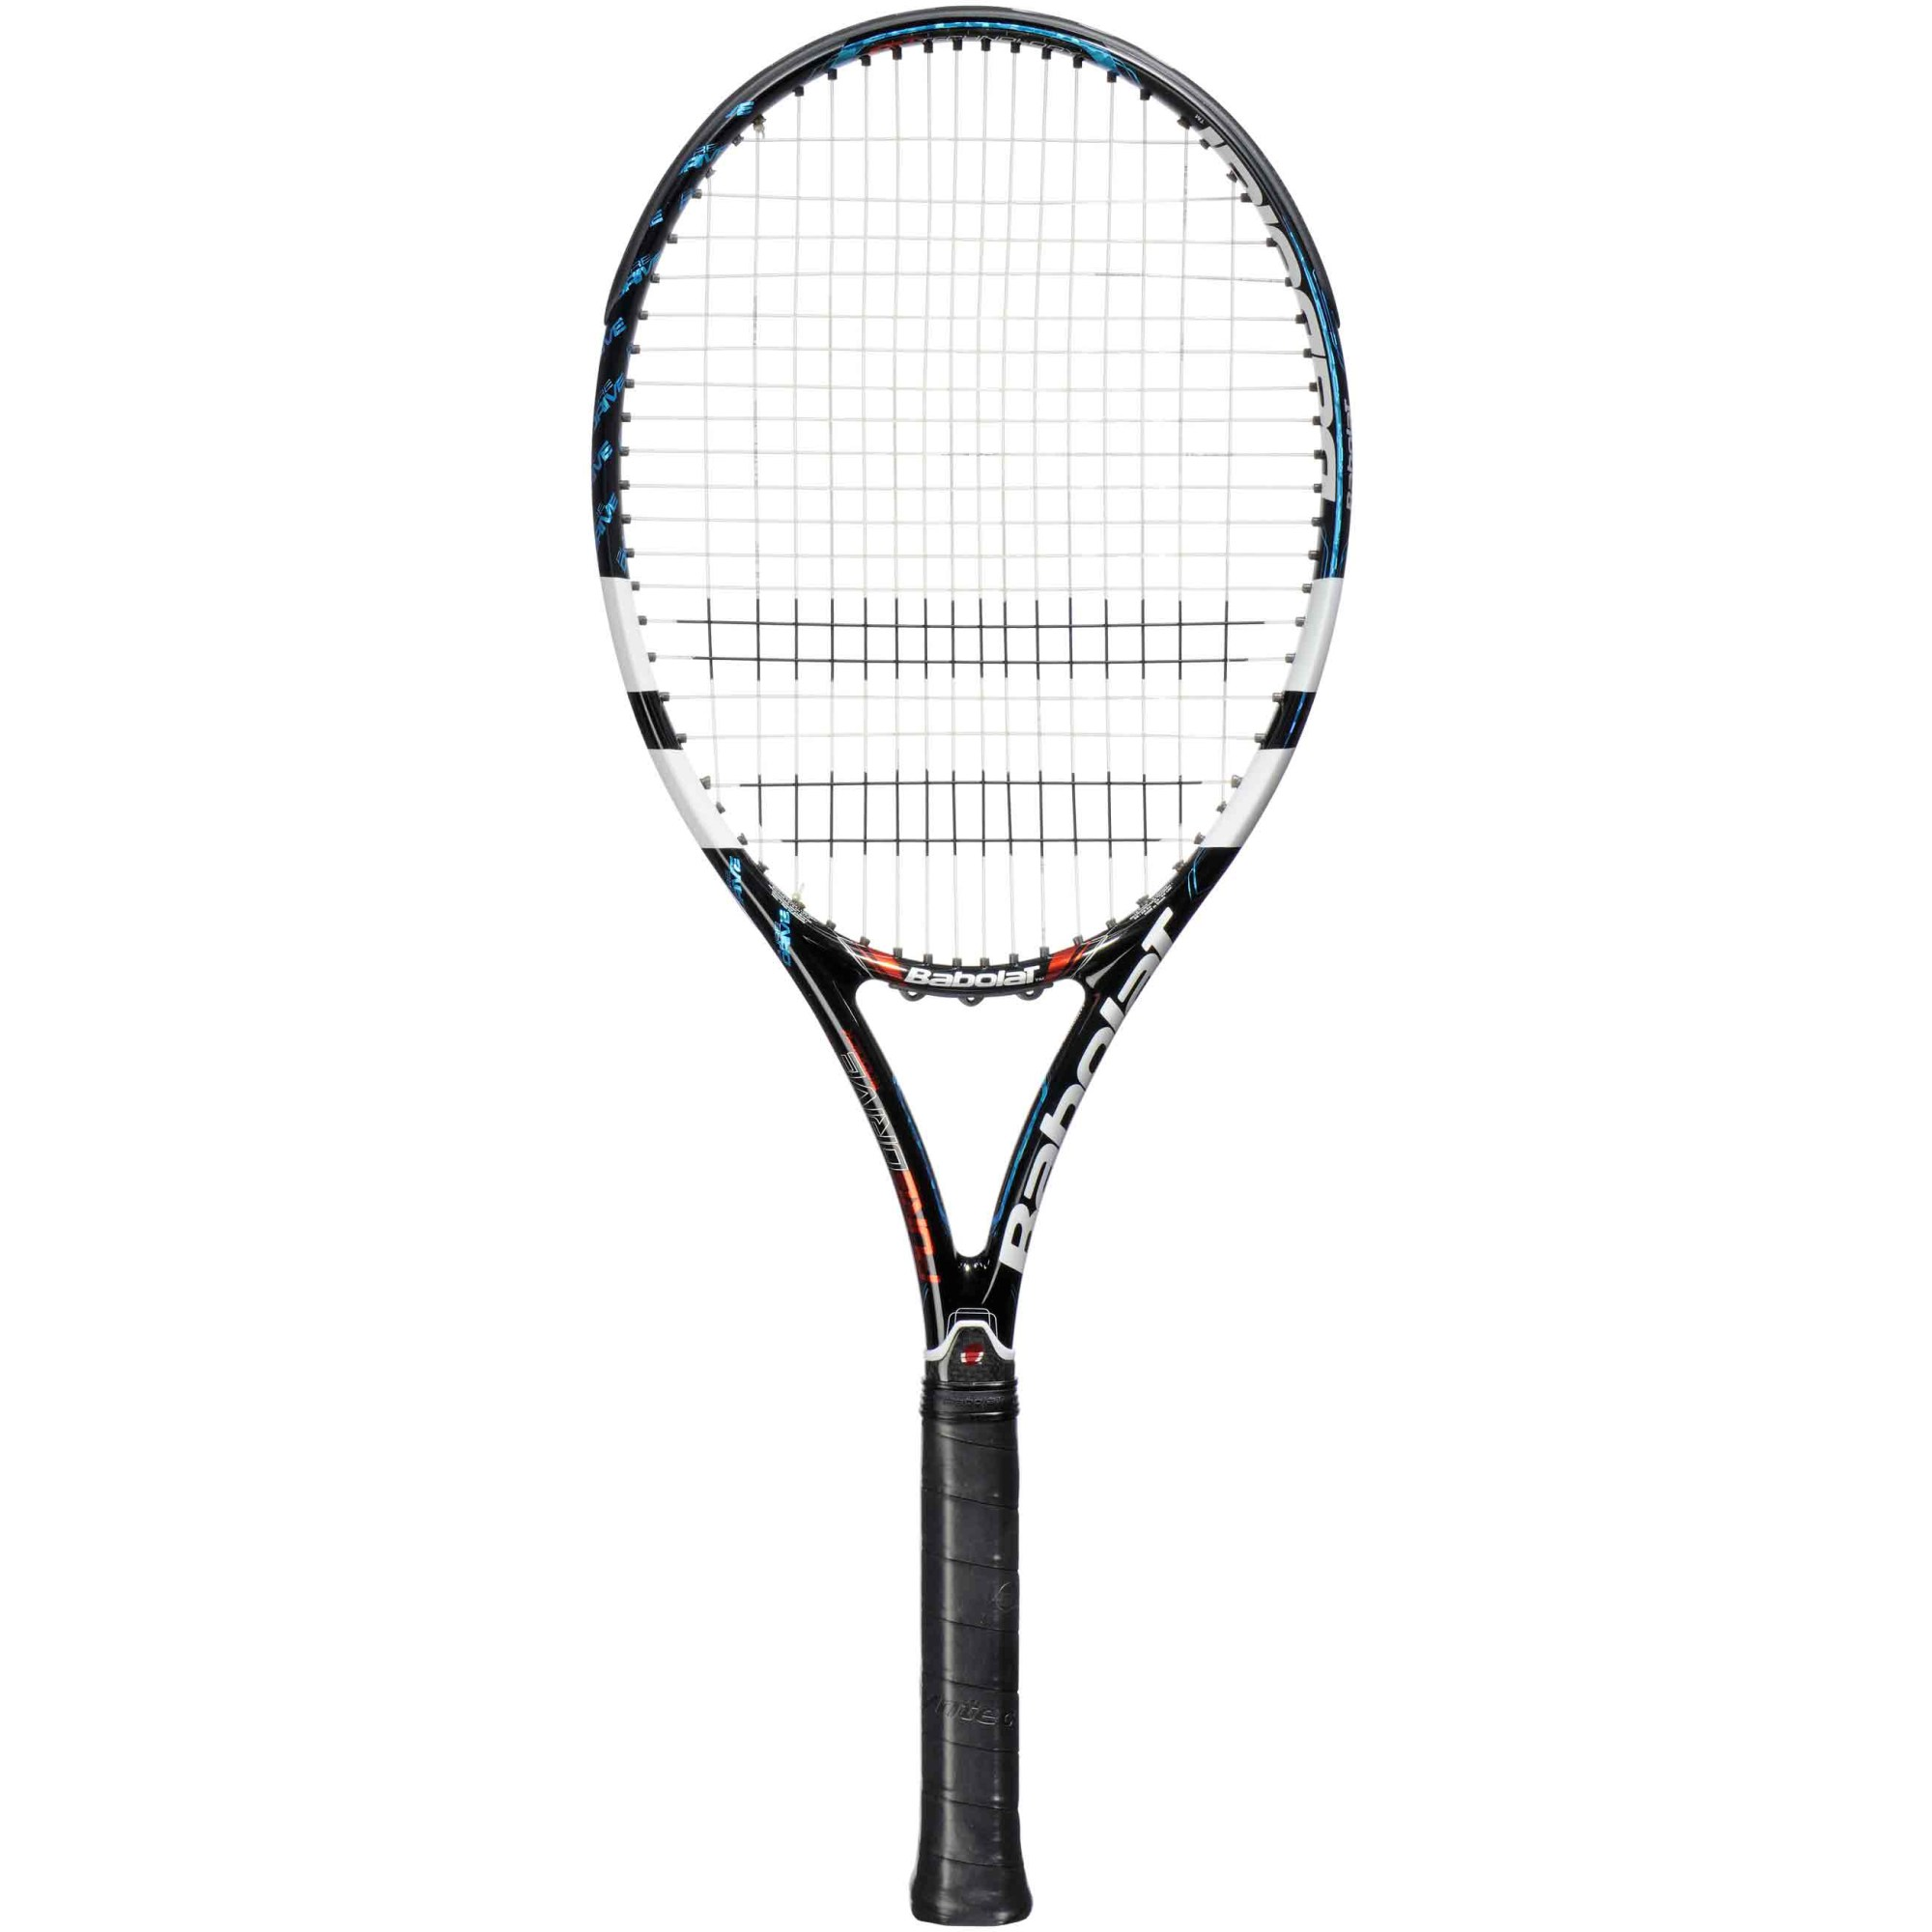 hight resolution of babolat tennis rackets babolat tennis racket buy online at